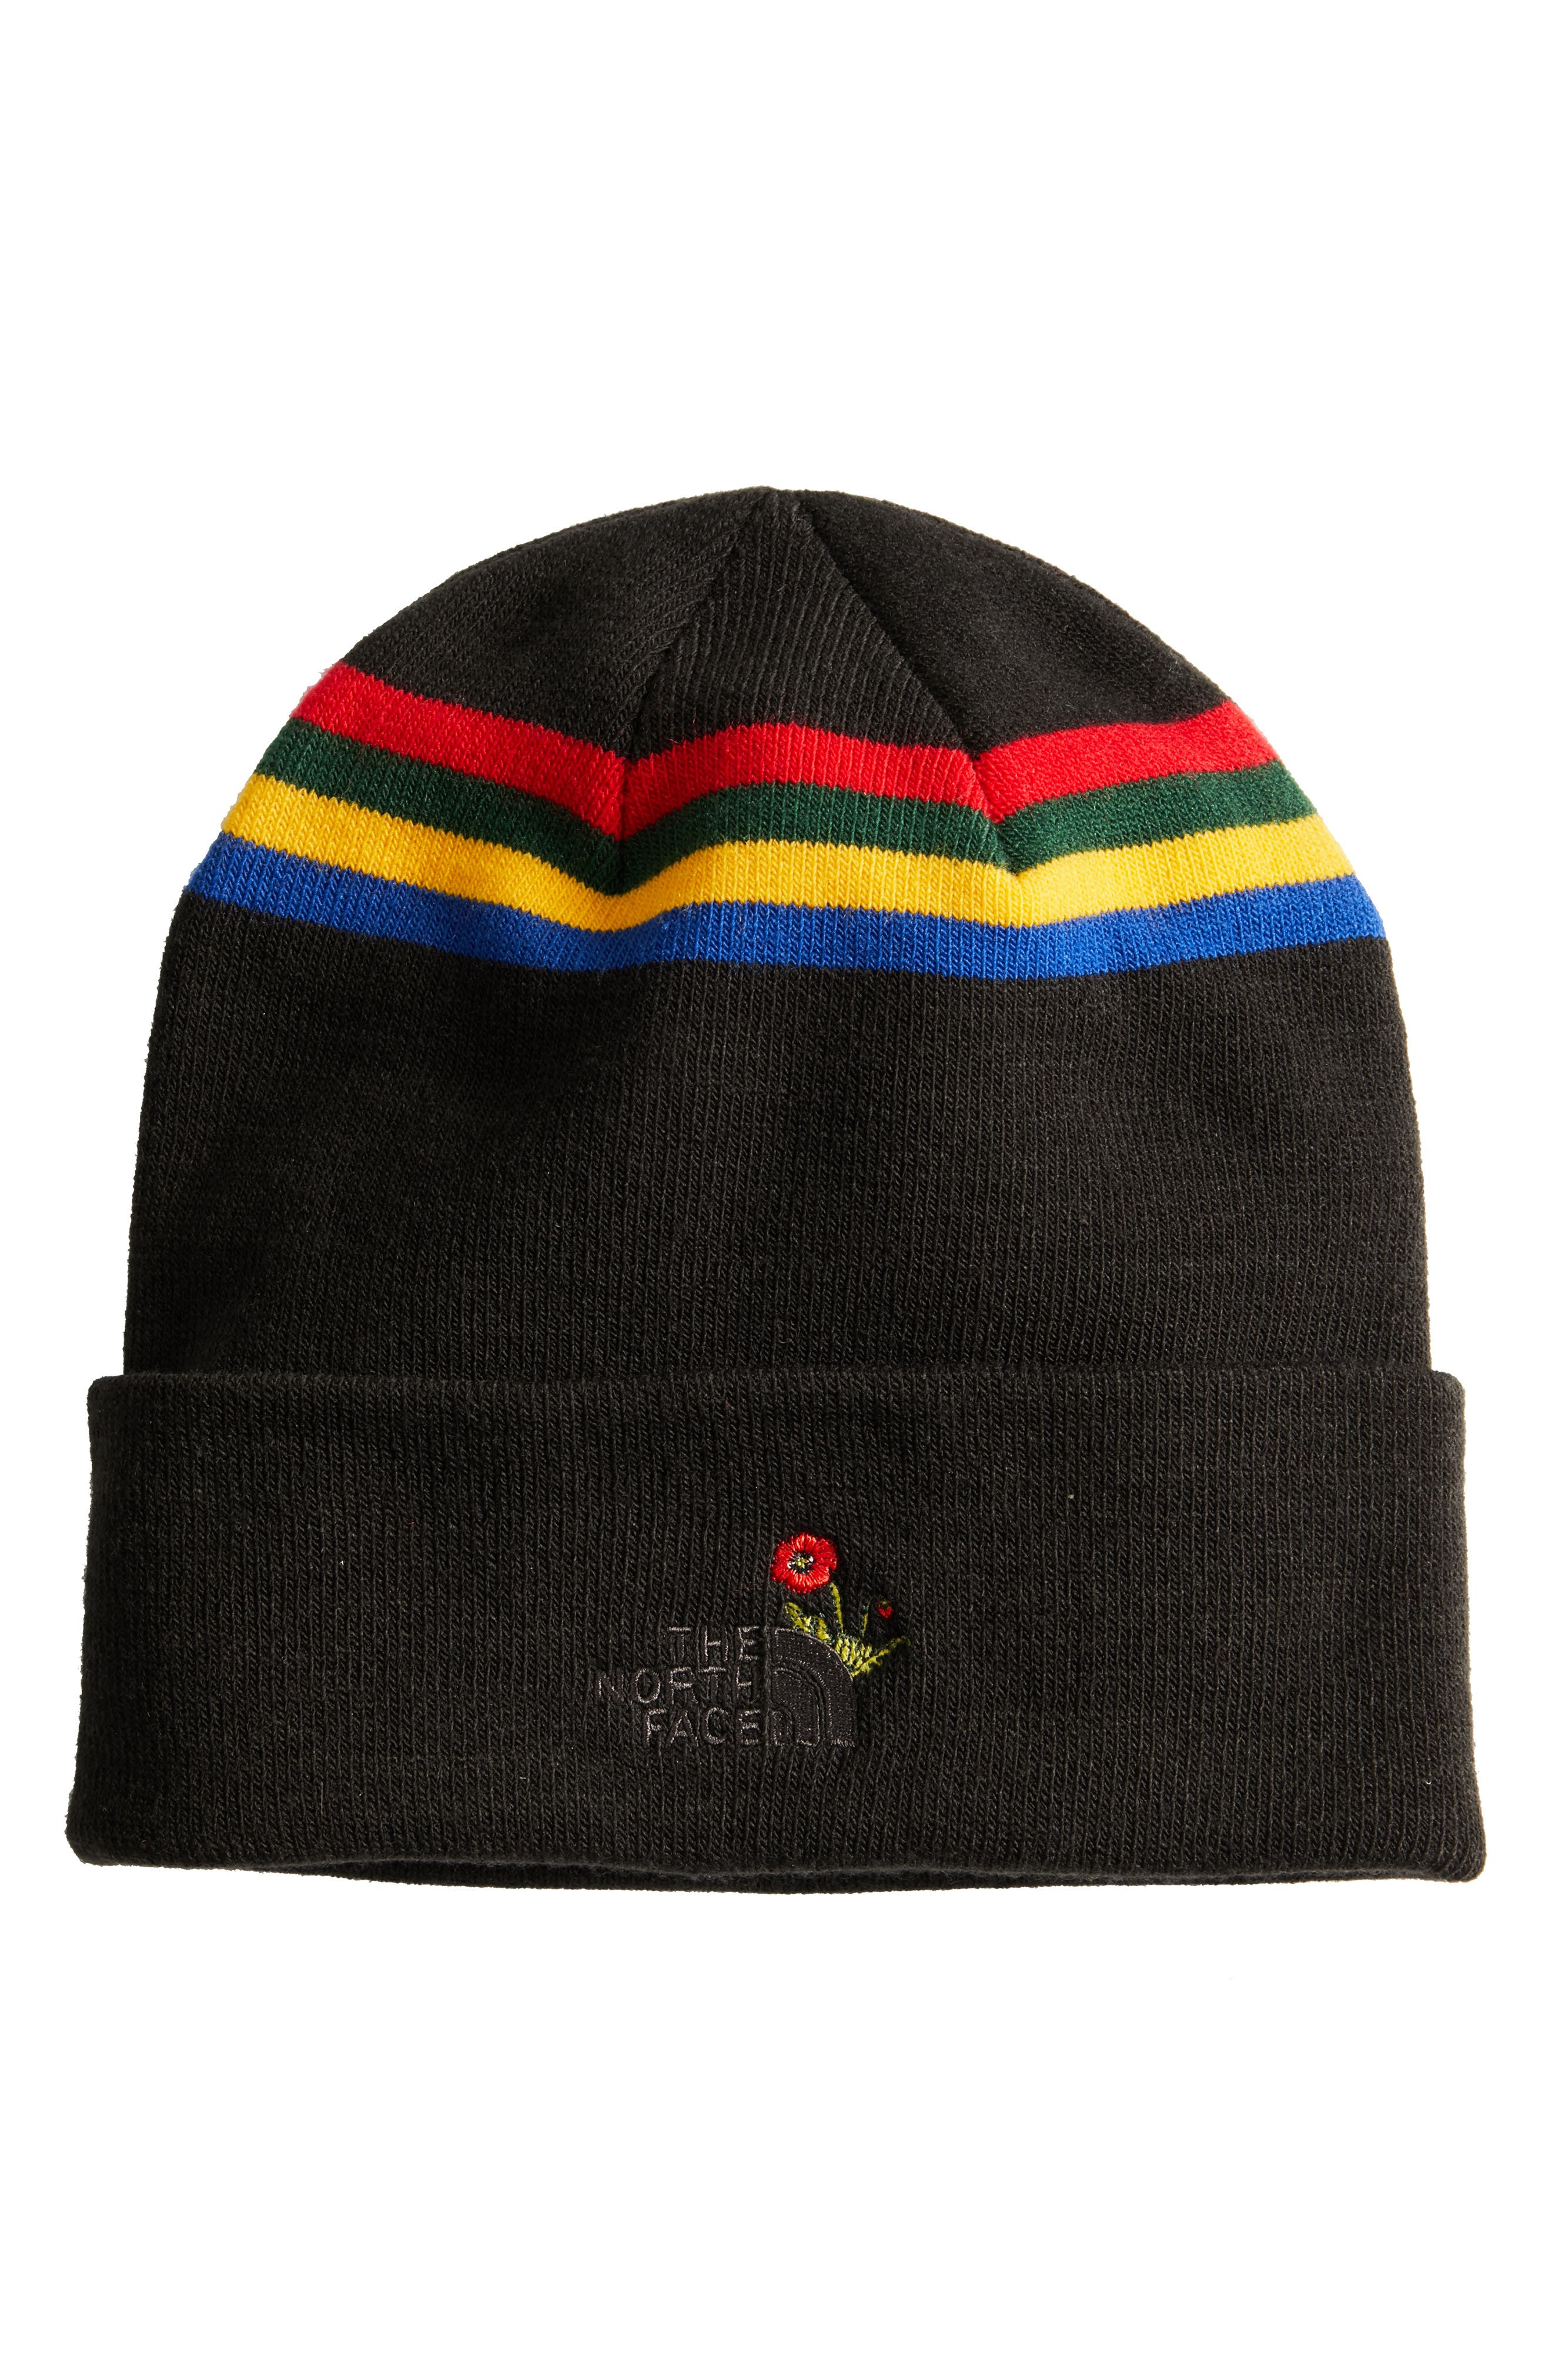 Poppy Dock Workers Beanie,                             Alternate thumbnail 2, color,                             001